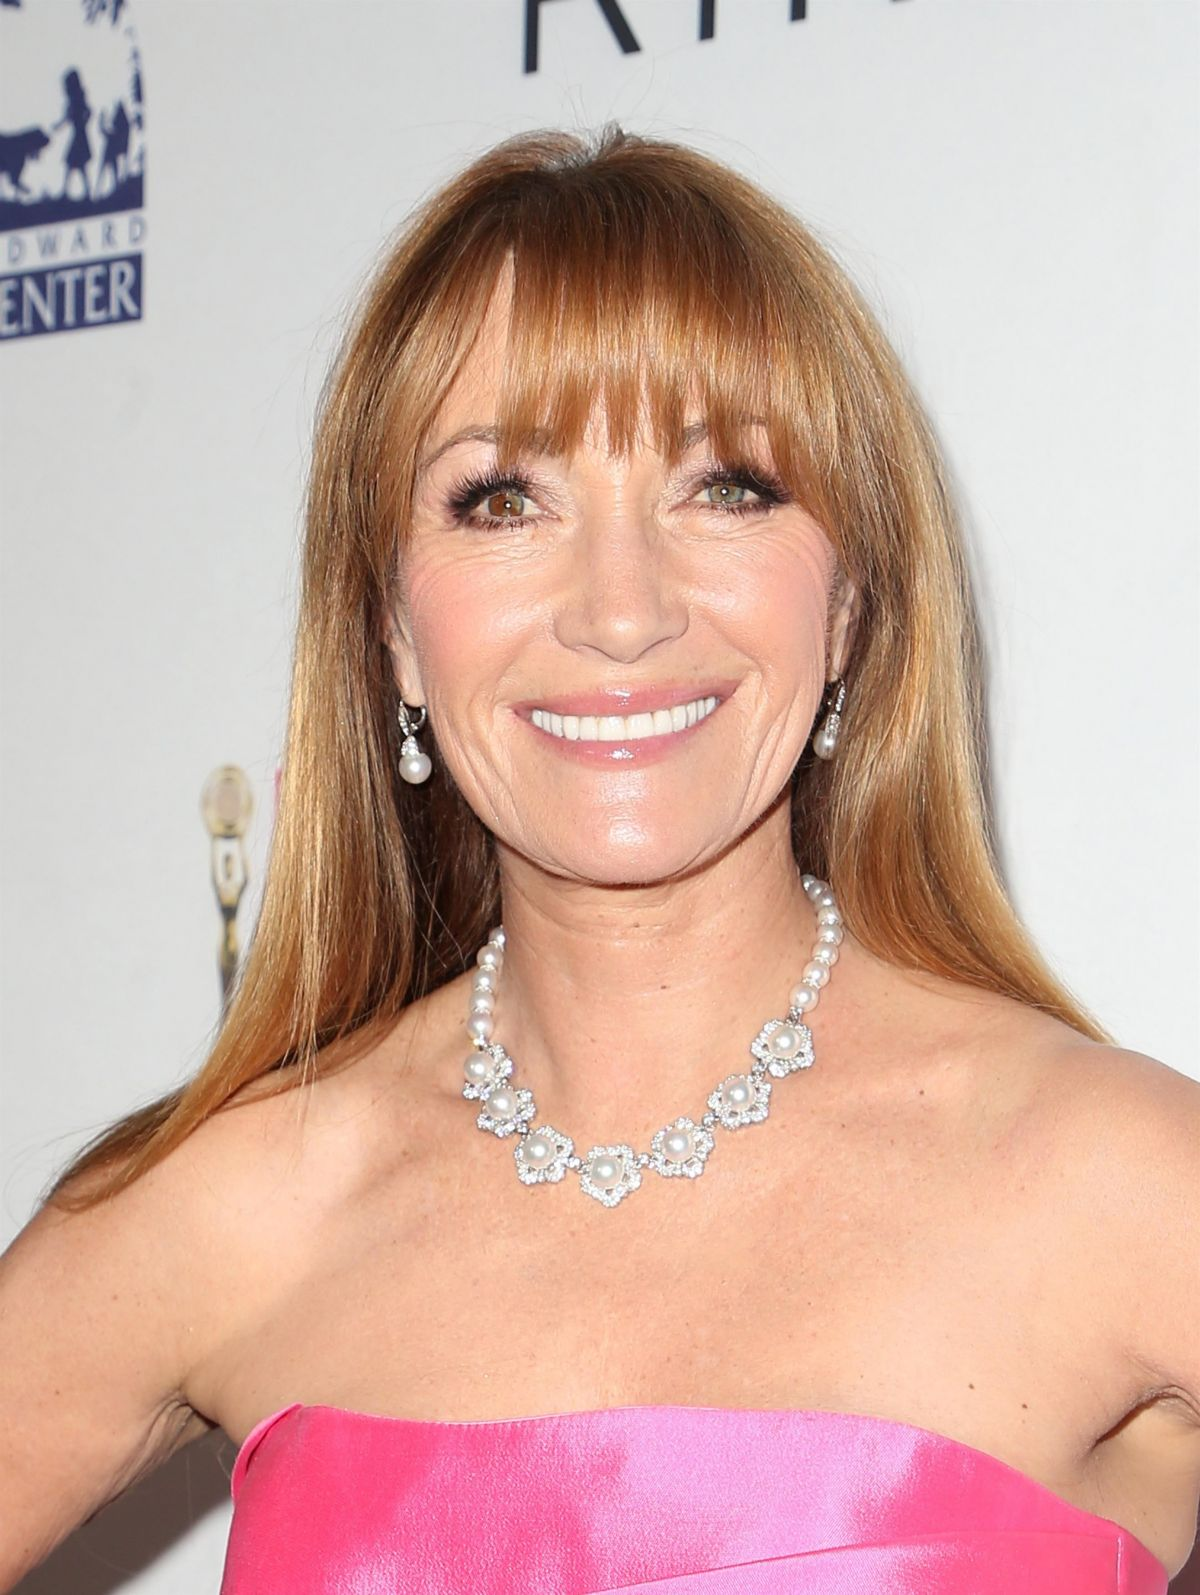 JANE SEYMOUR at Hollywood Beauty Awards in Los Angeles 02/25/2018 – HawtCelebs